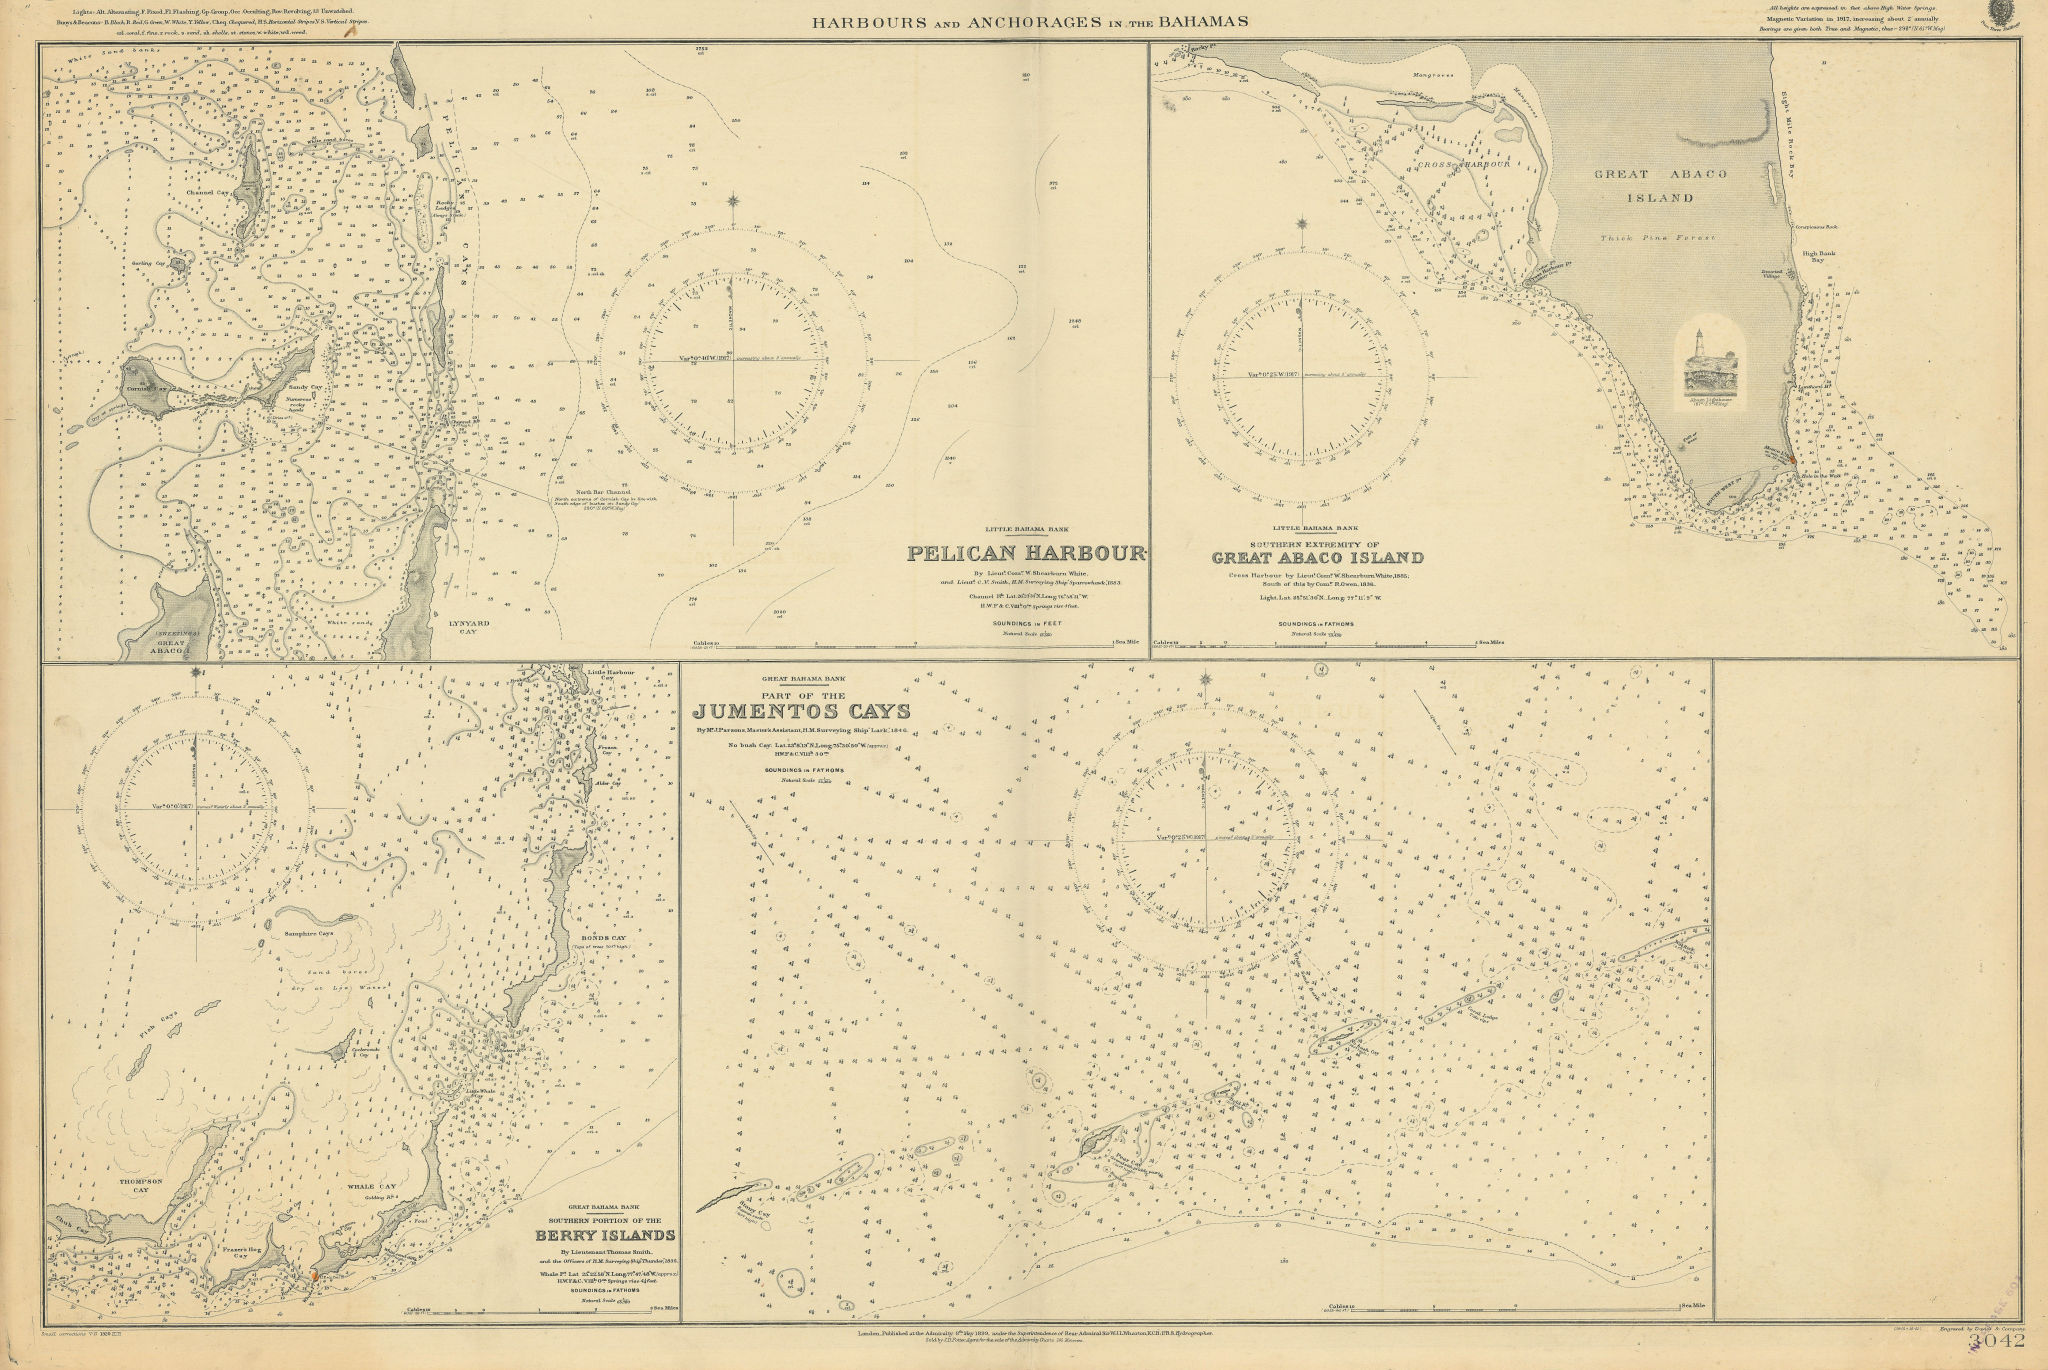 Bahamas harbours Pelican Abaco Berry I Jumentos ADMIRALTY chart 1899 (1920) map